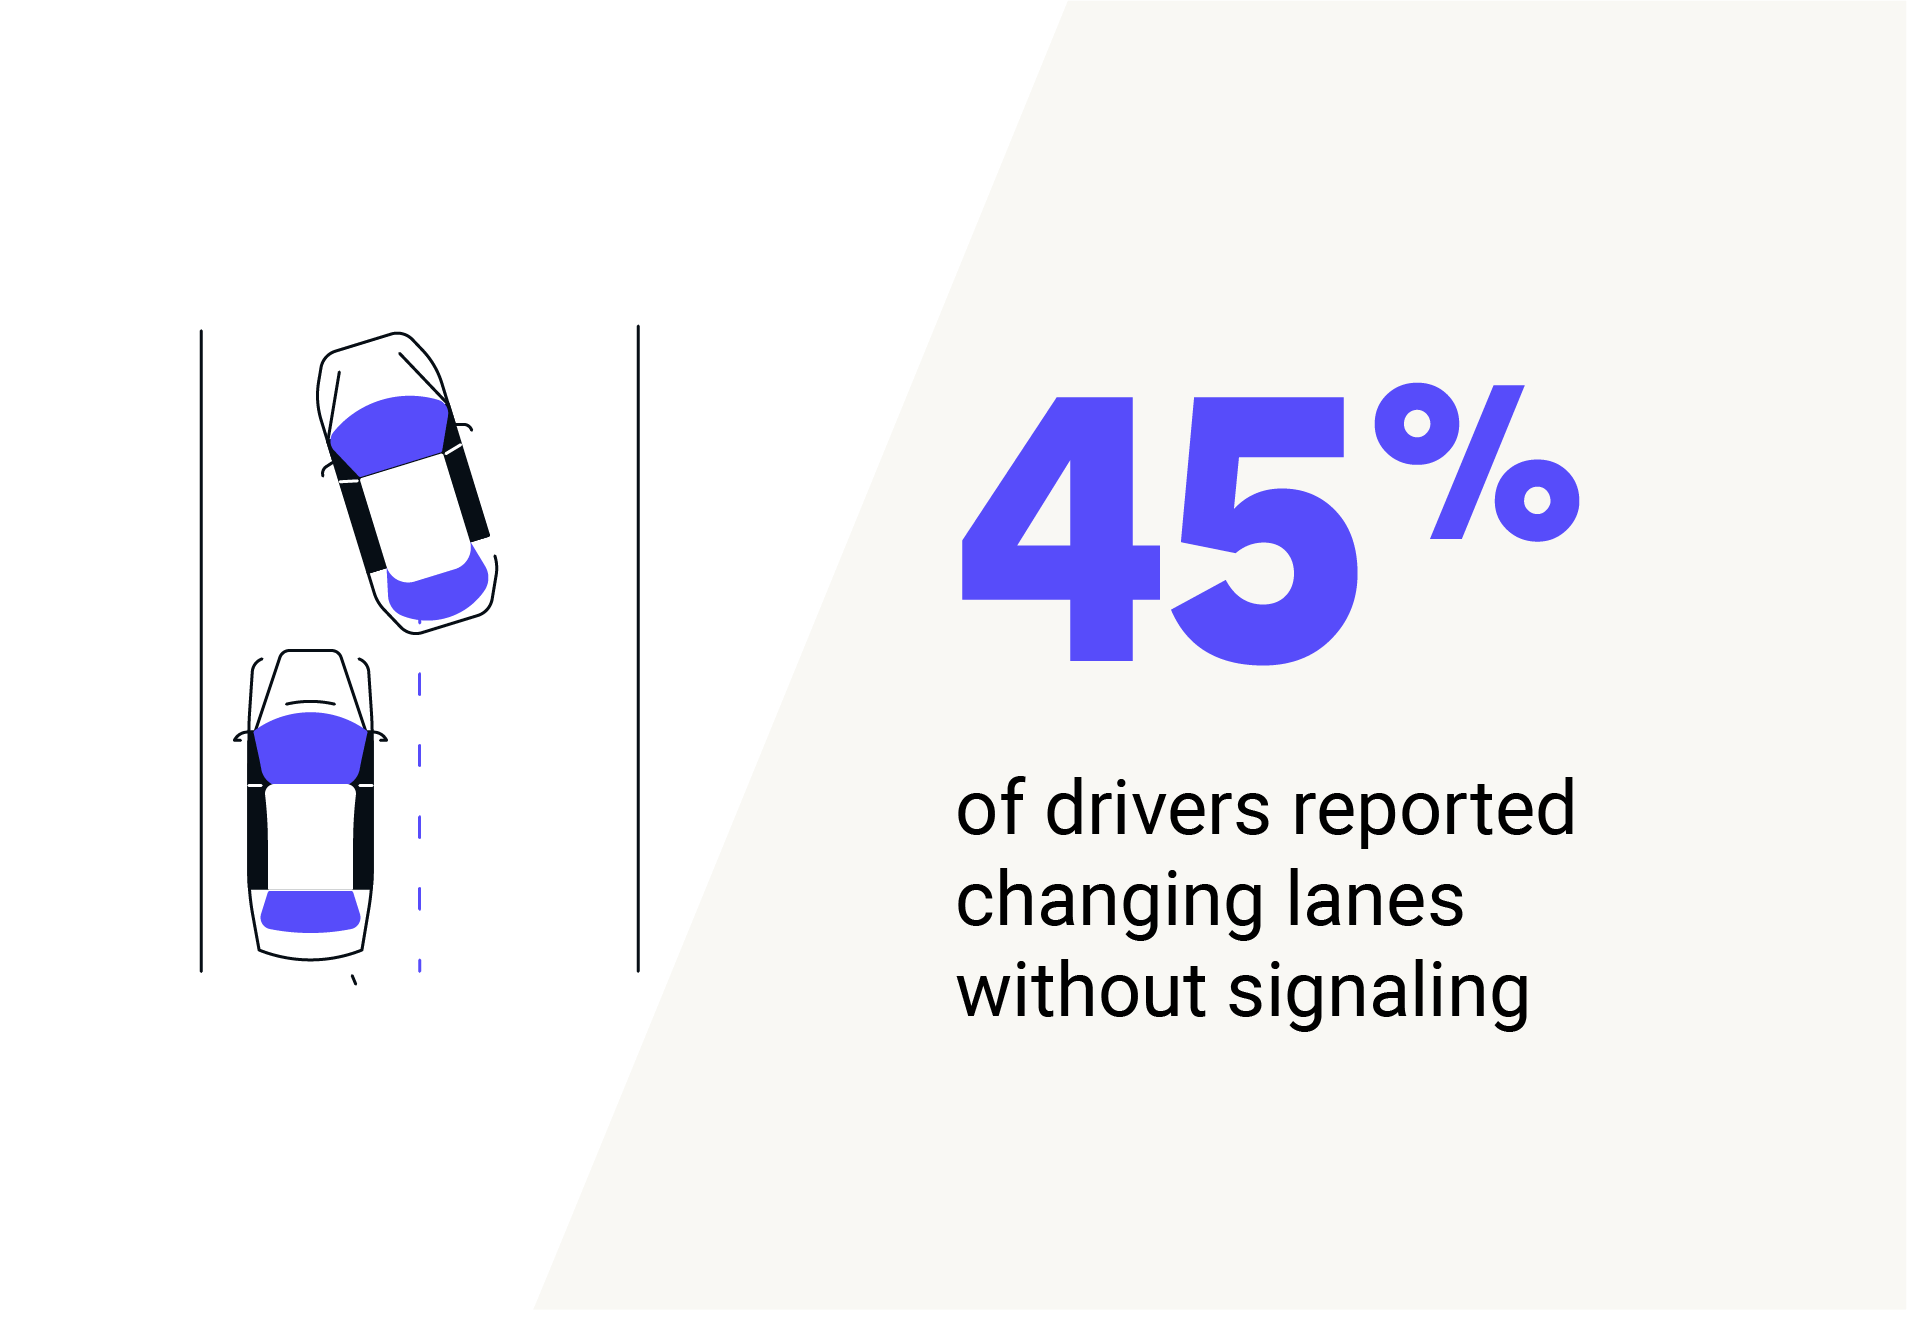 45% of drivers reported changing lanes without signaling